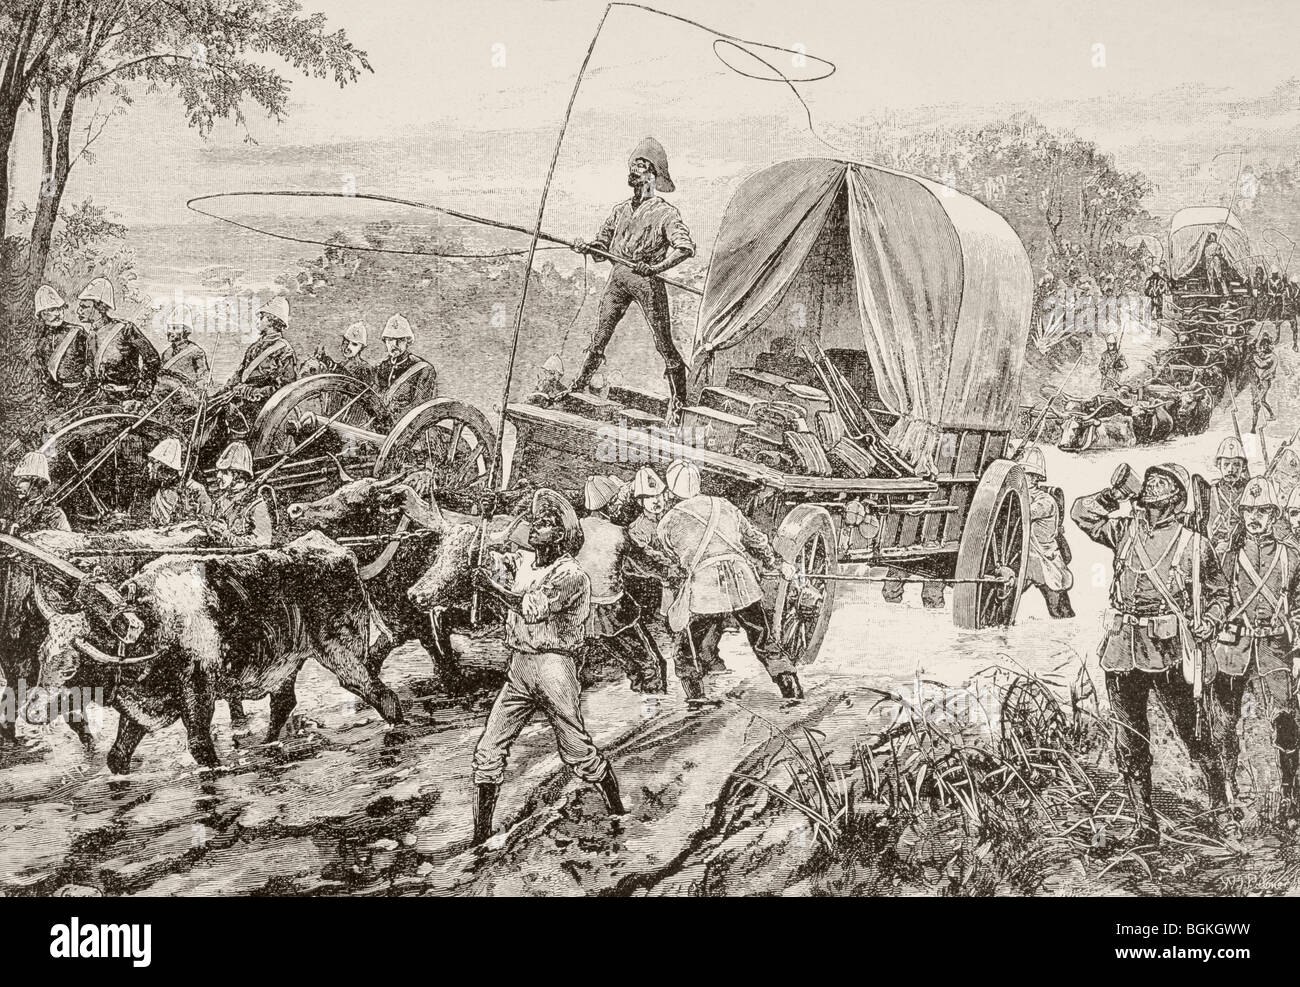 British army supply wagons drawn by oxen teams cross a river during the Anglo-Zulu War. - Stock Image